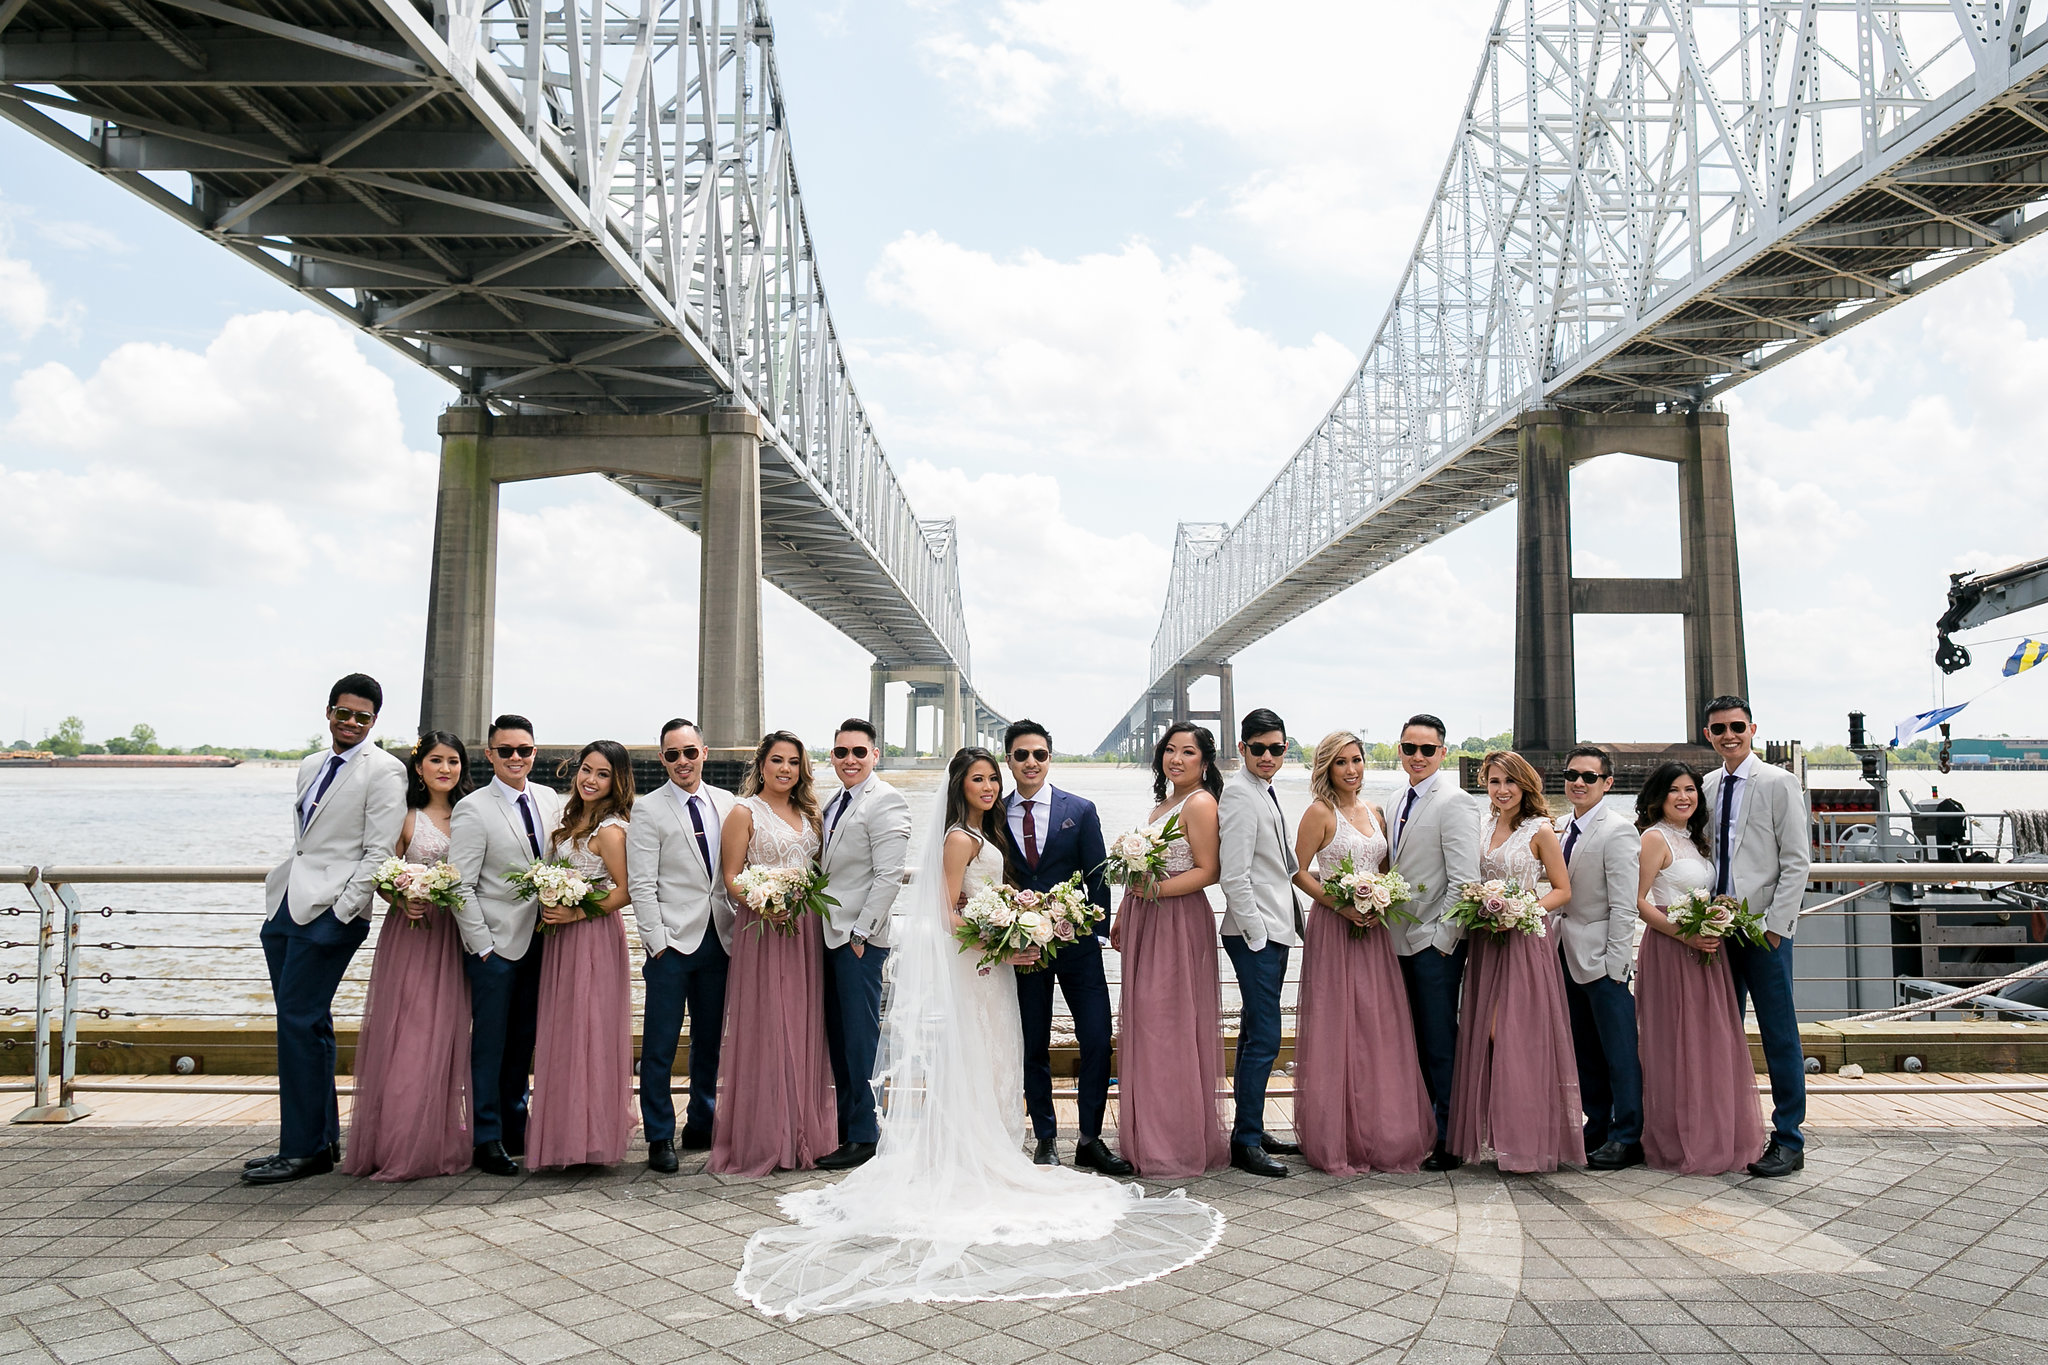 New Orleans Wedding Photography Destination David Kim-9.jpg